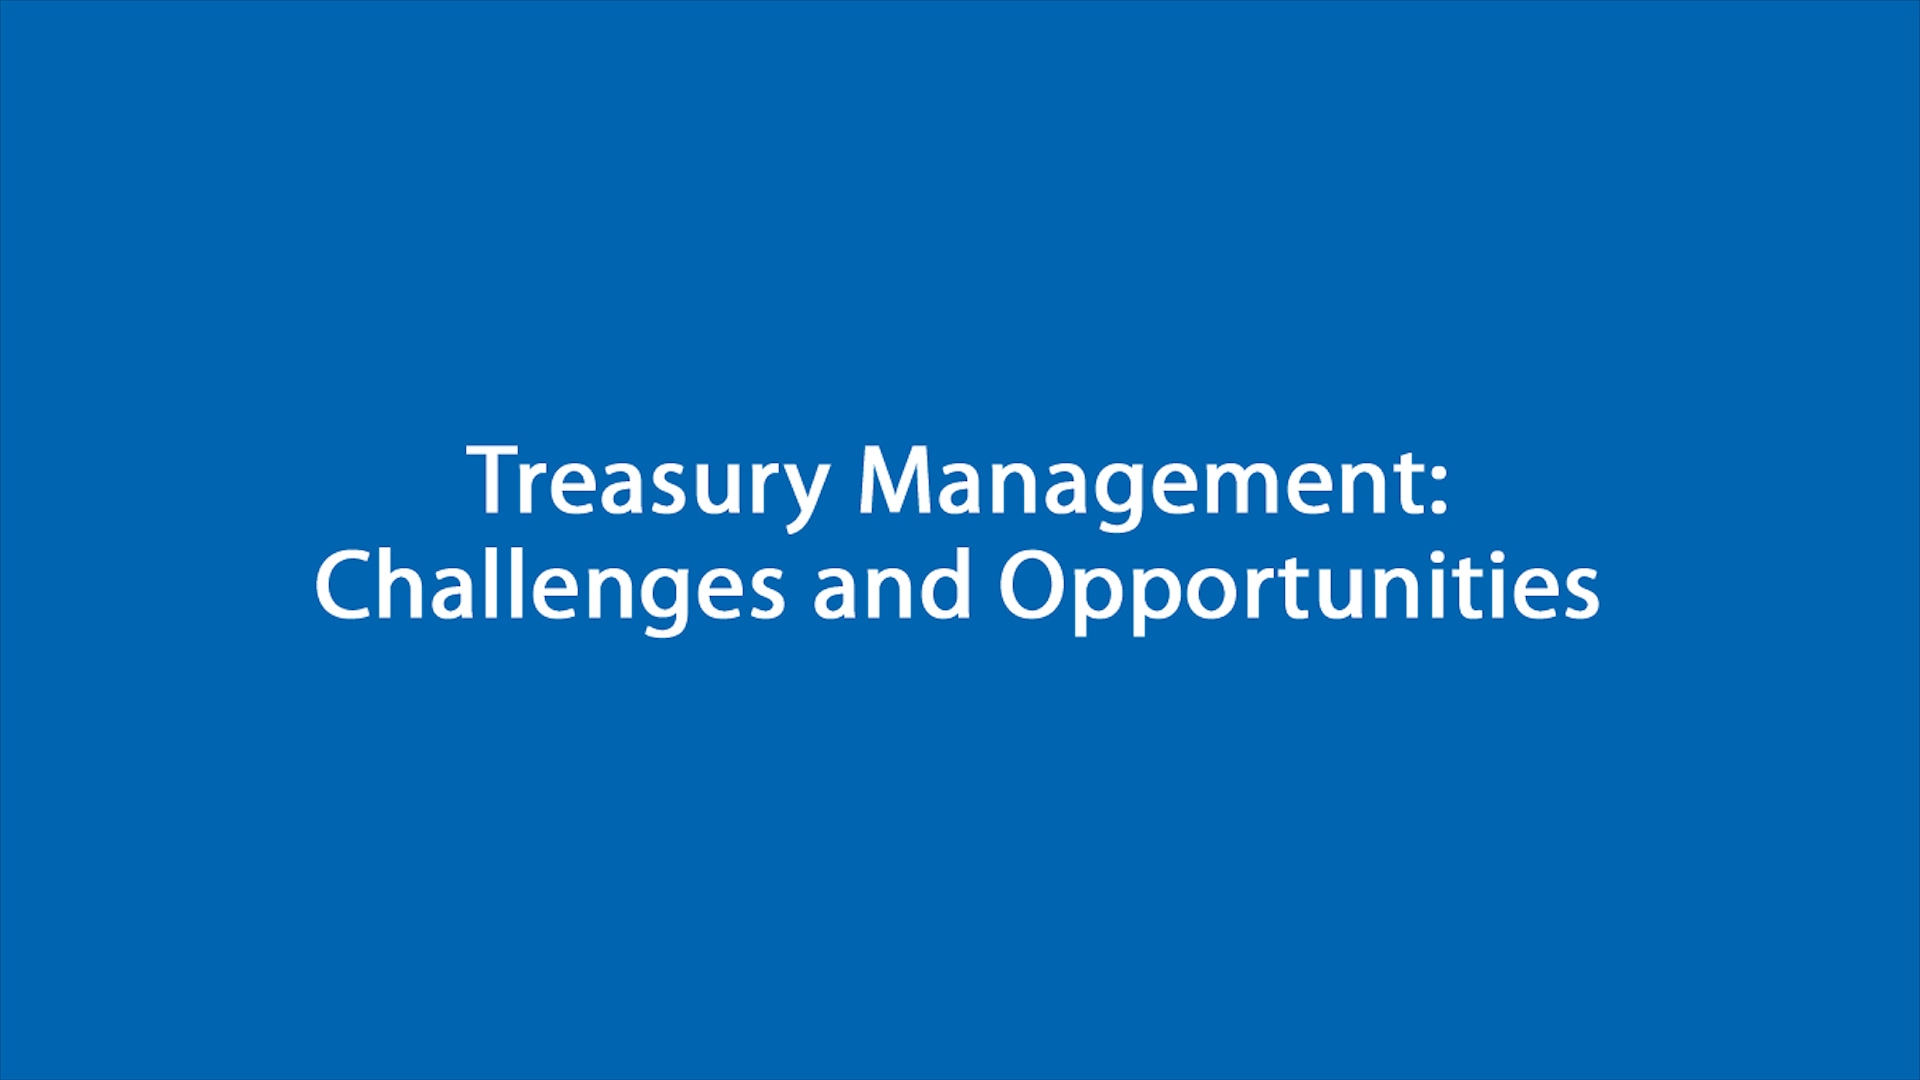 Treasury Management Challenges and Opportunities